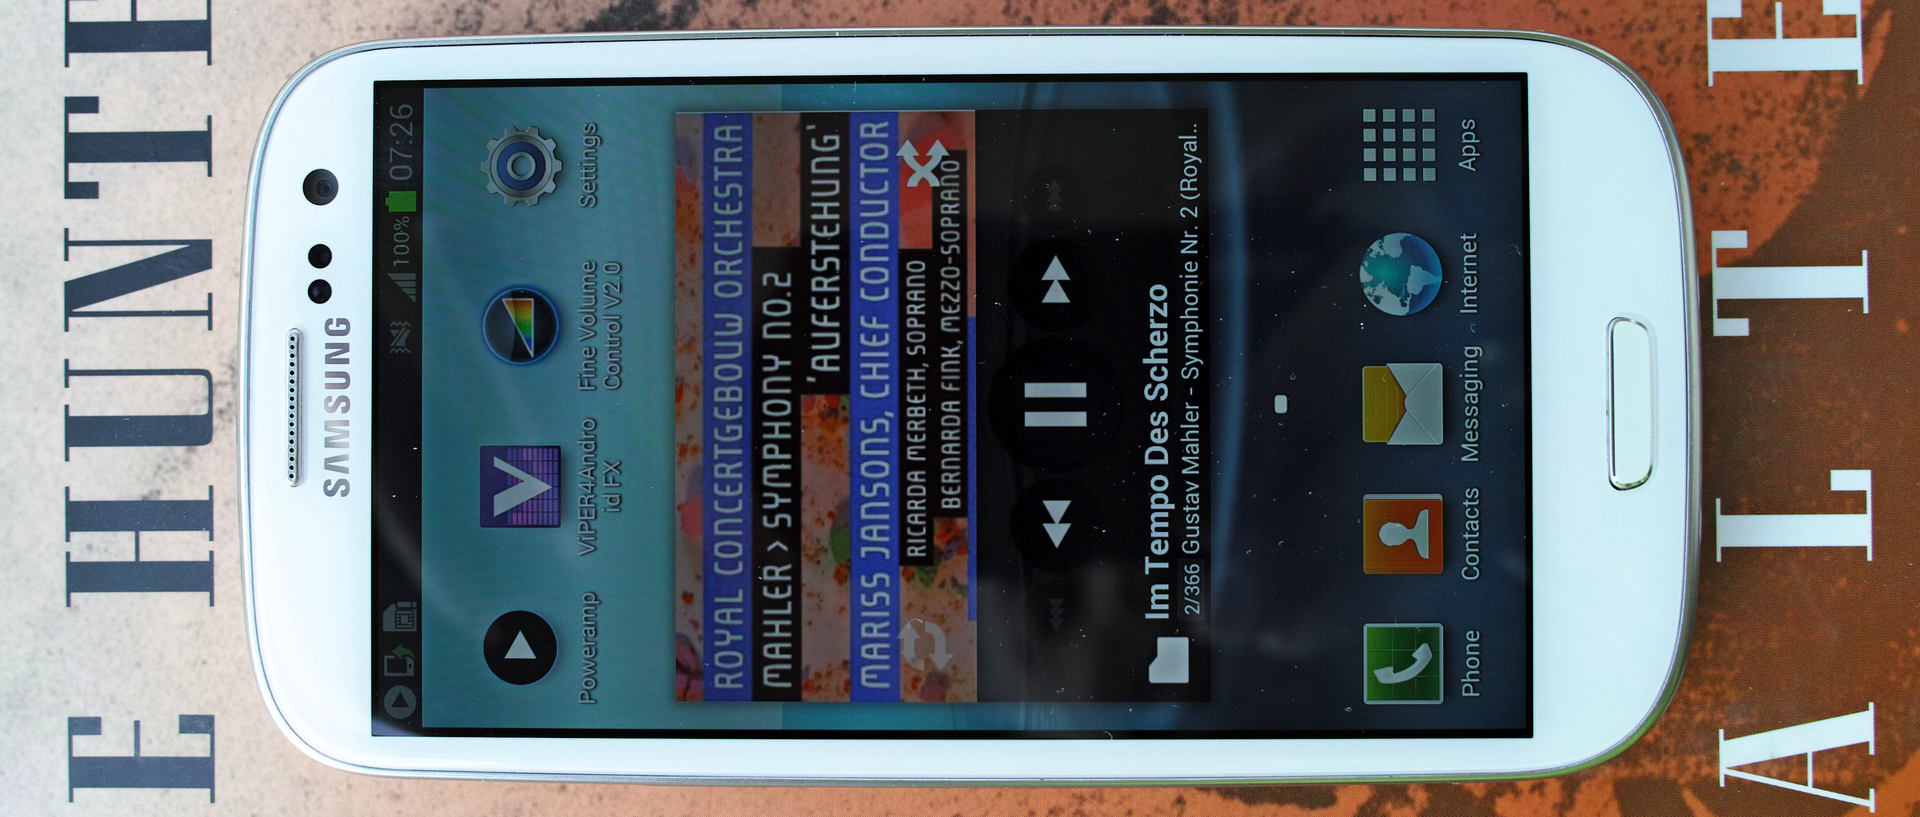 REVIEW/TOUR] Somic MH412 + Viper4Android  The